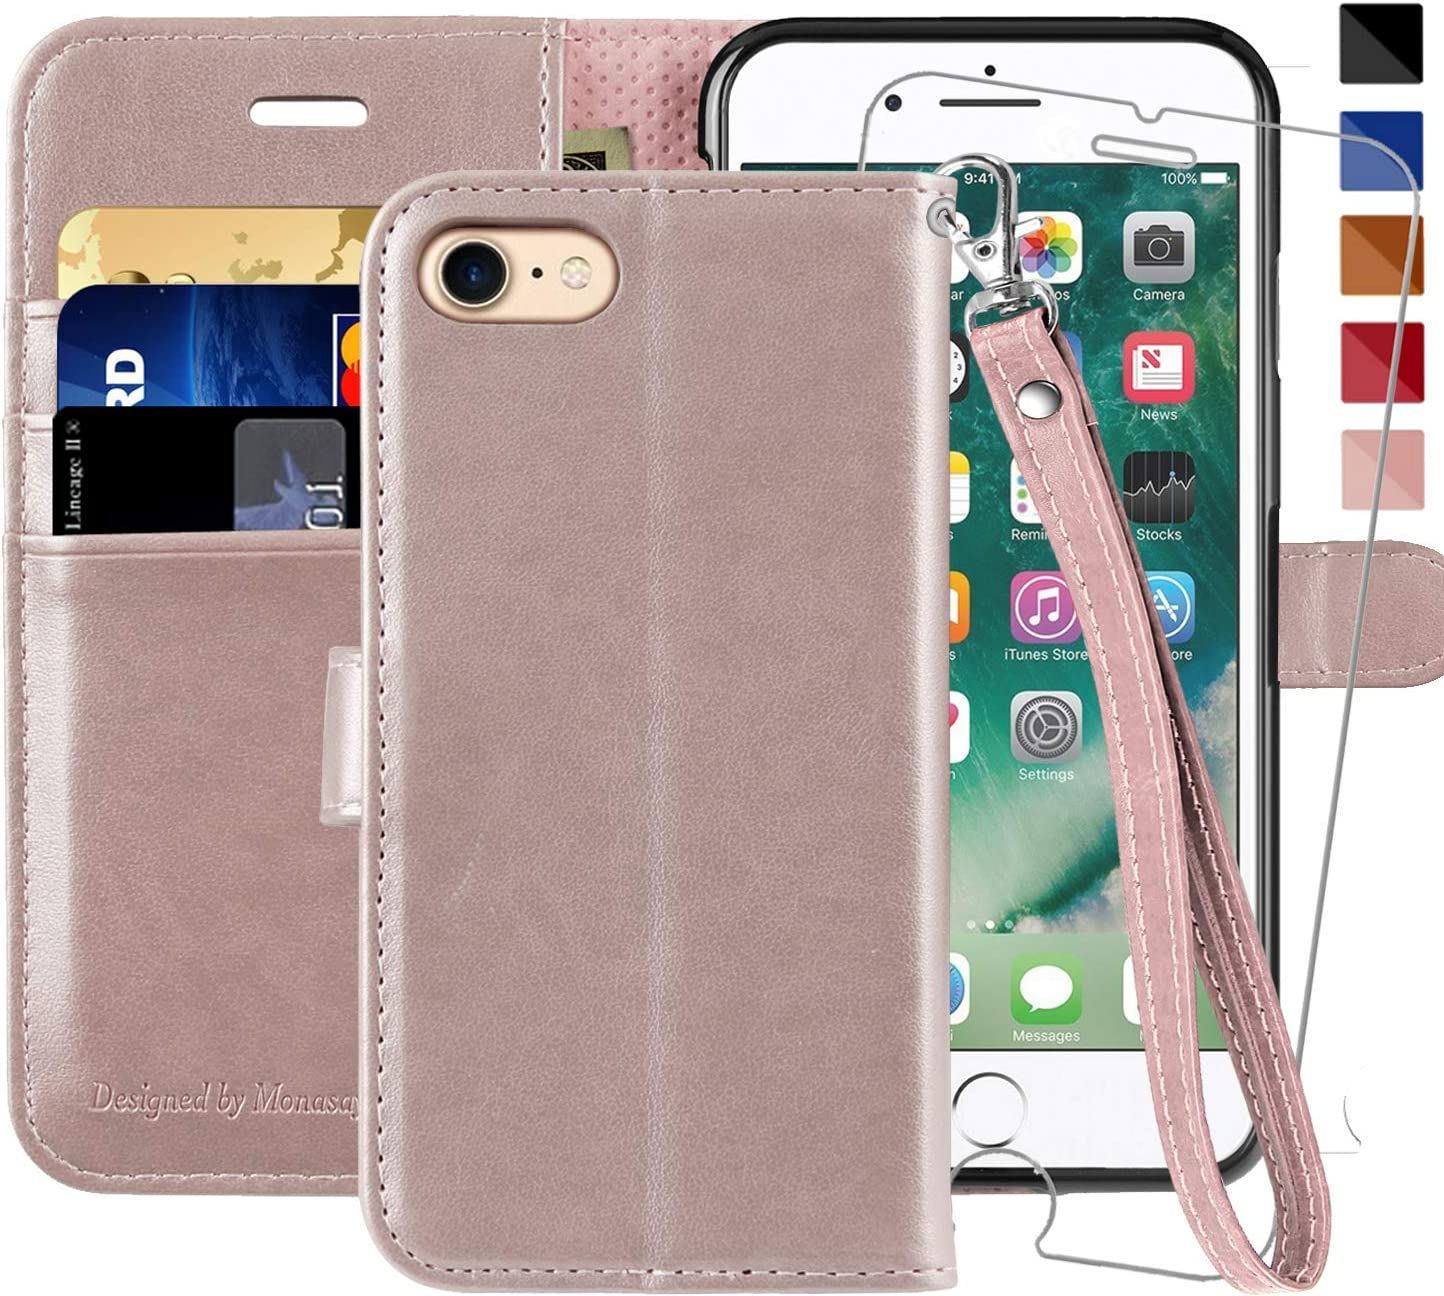 iPhone 6 Wallet Case/iPhone 6s Wallet Case,4.7-inch, MONASAY [Glass Screen Protector Included] Flip Folio Leather Cell Phone Cover with Credit Card Holder for Apple iPhone 6/6S (Rosegold with Strap)